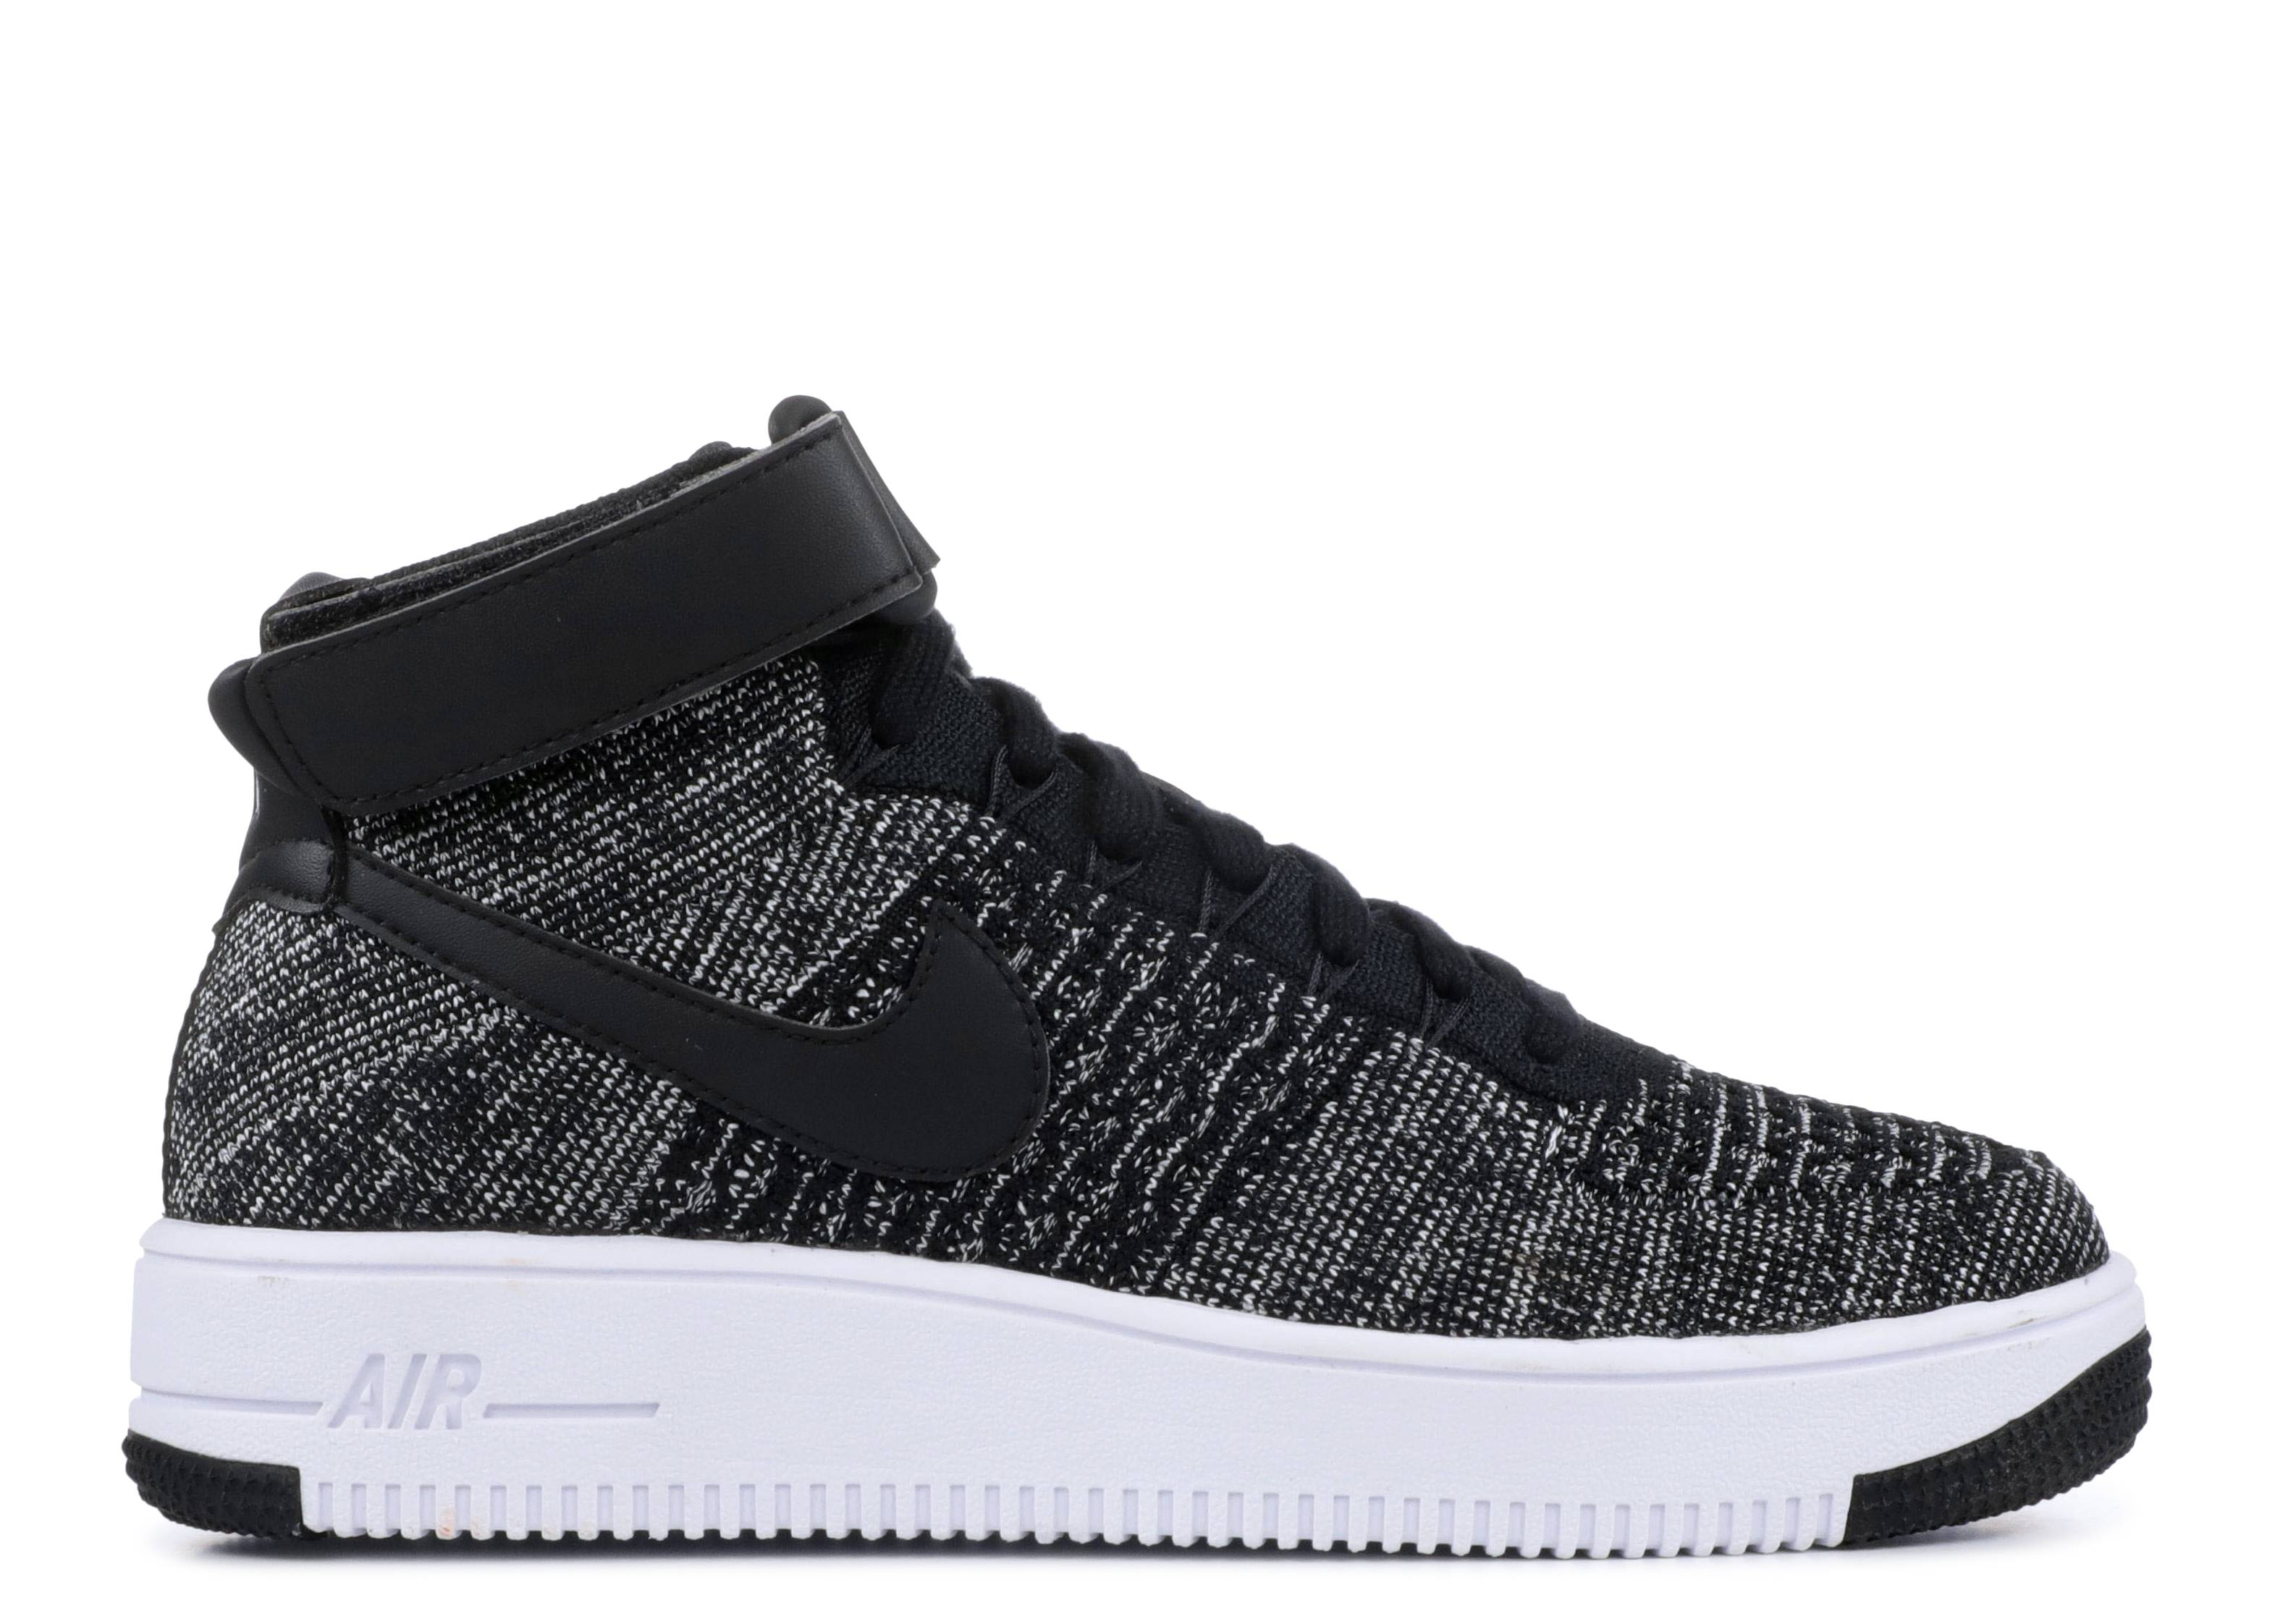 "af1 ultra flyknit mid (gs) ""Black White"""